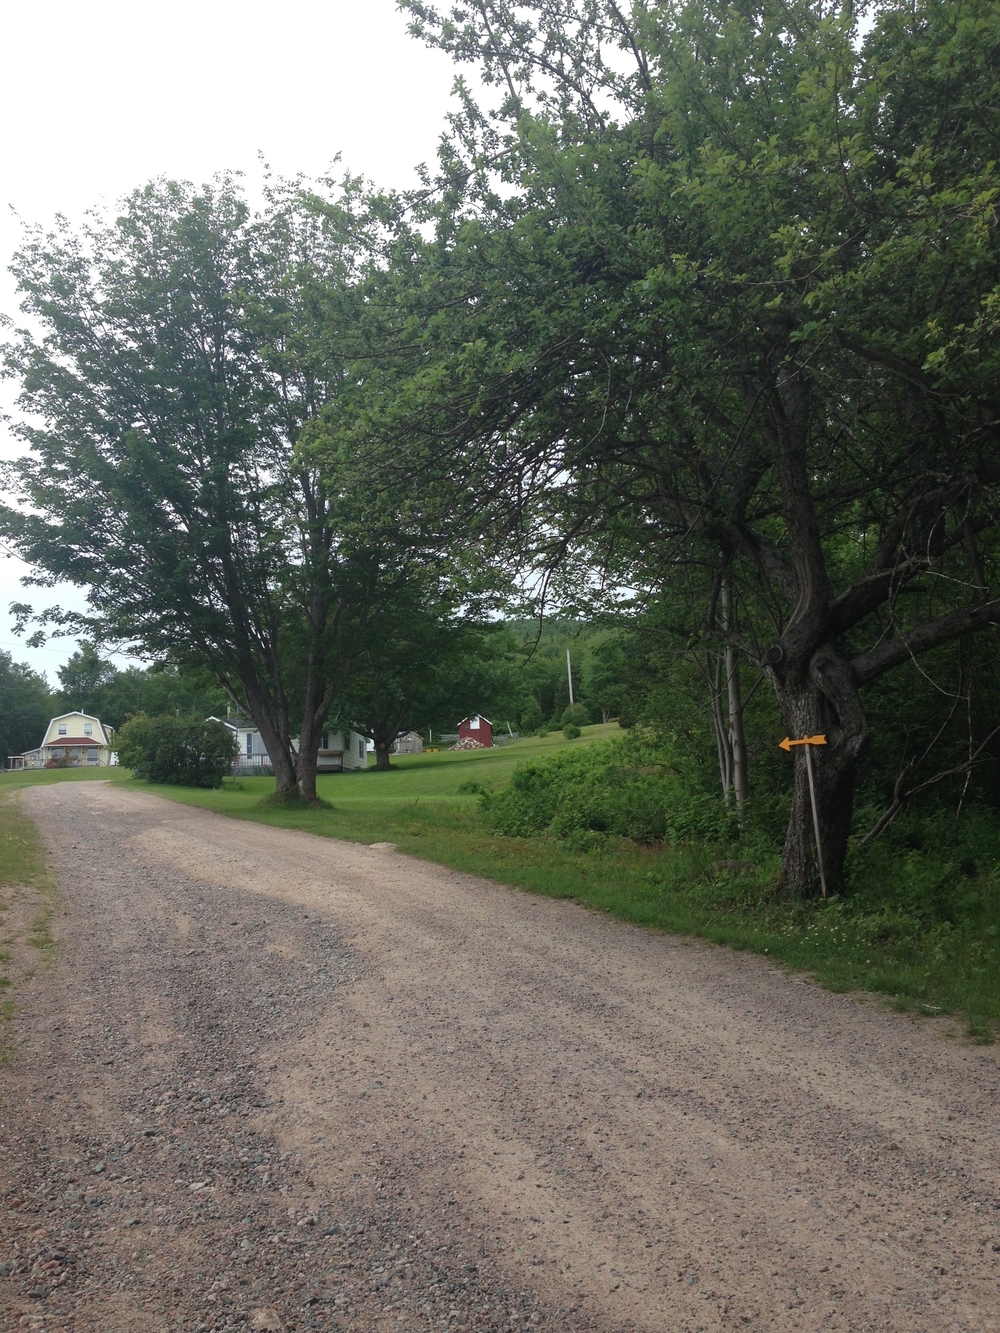 The road to my family's property in Ingonish.